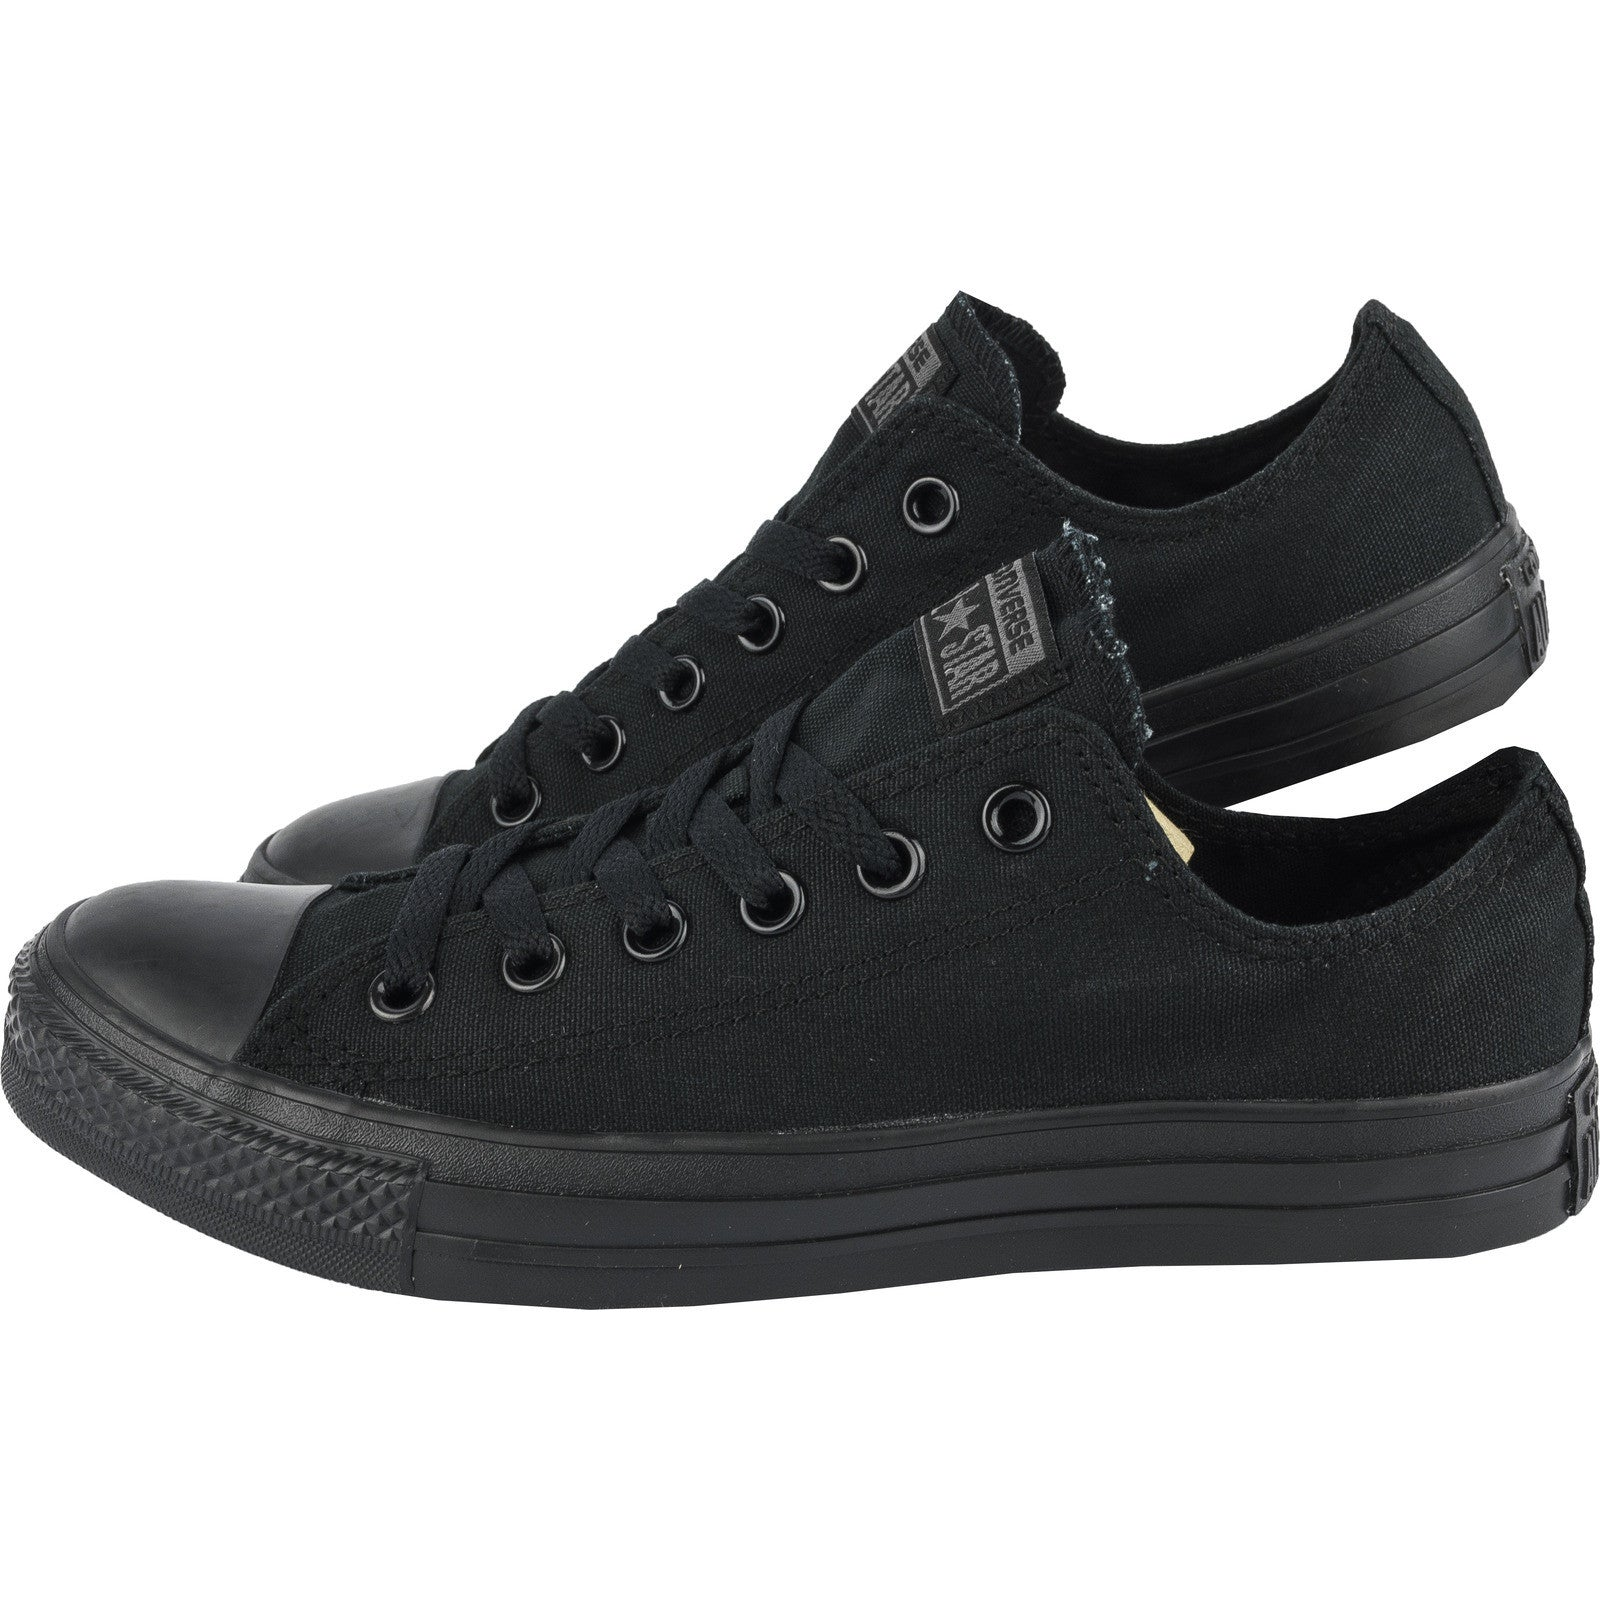 Claraboya pub lluvia  Converse Classic Chuck Taylor Low Trainer All Star OX NEW On Sale Free  Delivery UK - Min-Limited